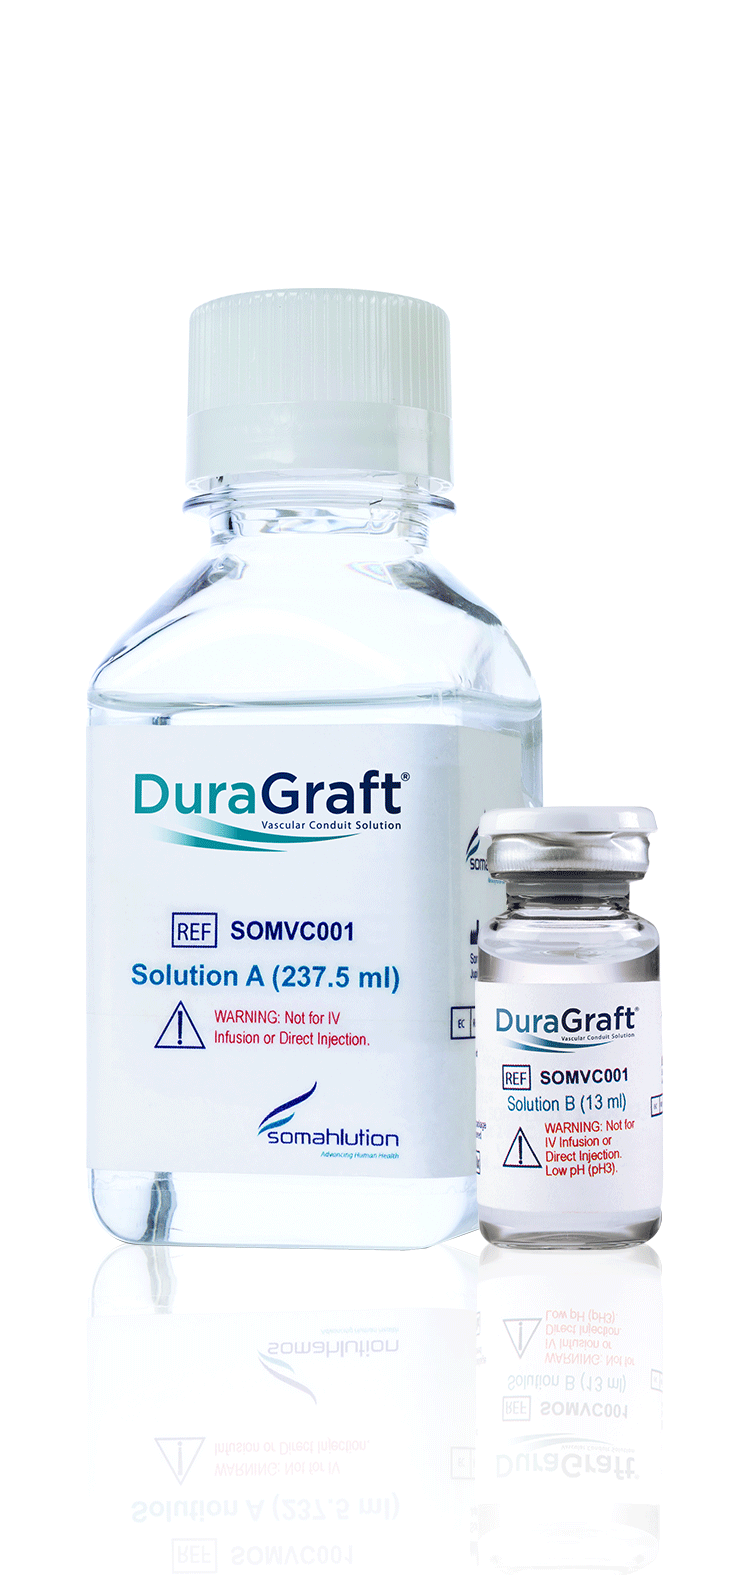 Duragraft Somahlution Product